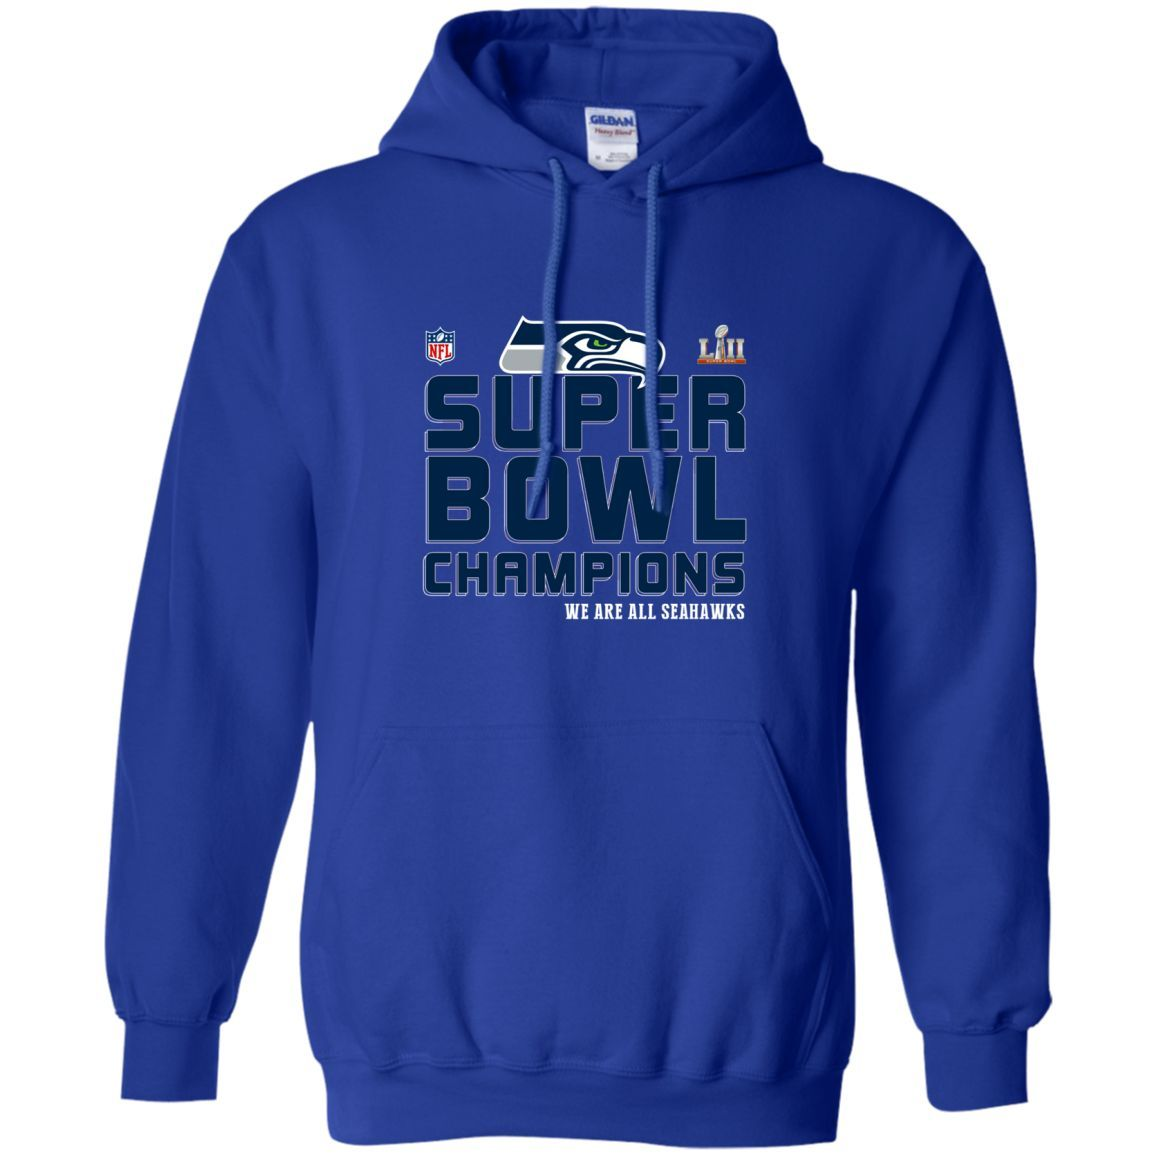 National Football League Seattle Seahawks champions we are all Seahawks super bowl LII 2018 T shirt hoodie sweater